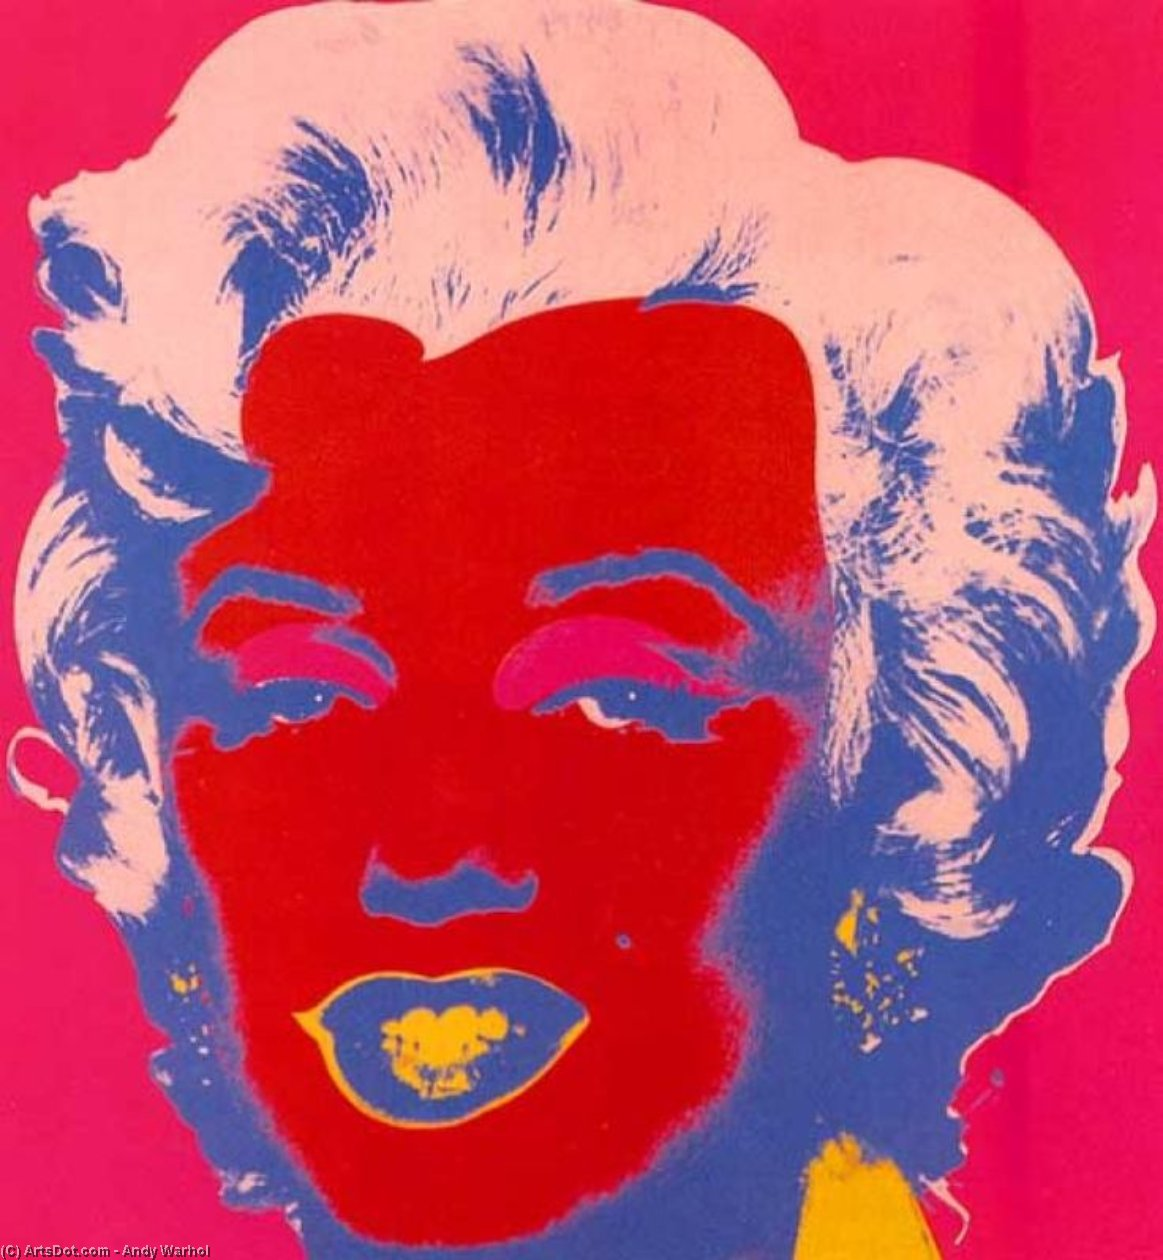 Wikioo.org - The Encyclopedia of Fine Arts - Painting, Artwork by Andy Warhol - Marylin Red